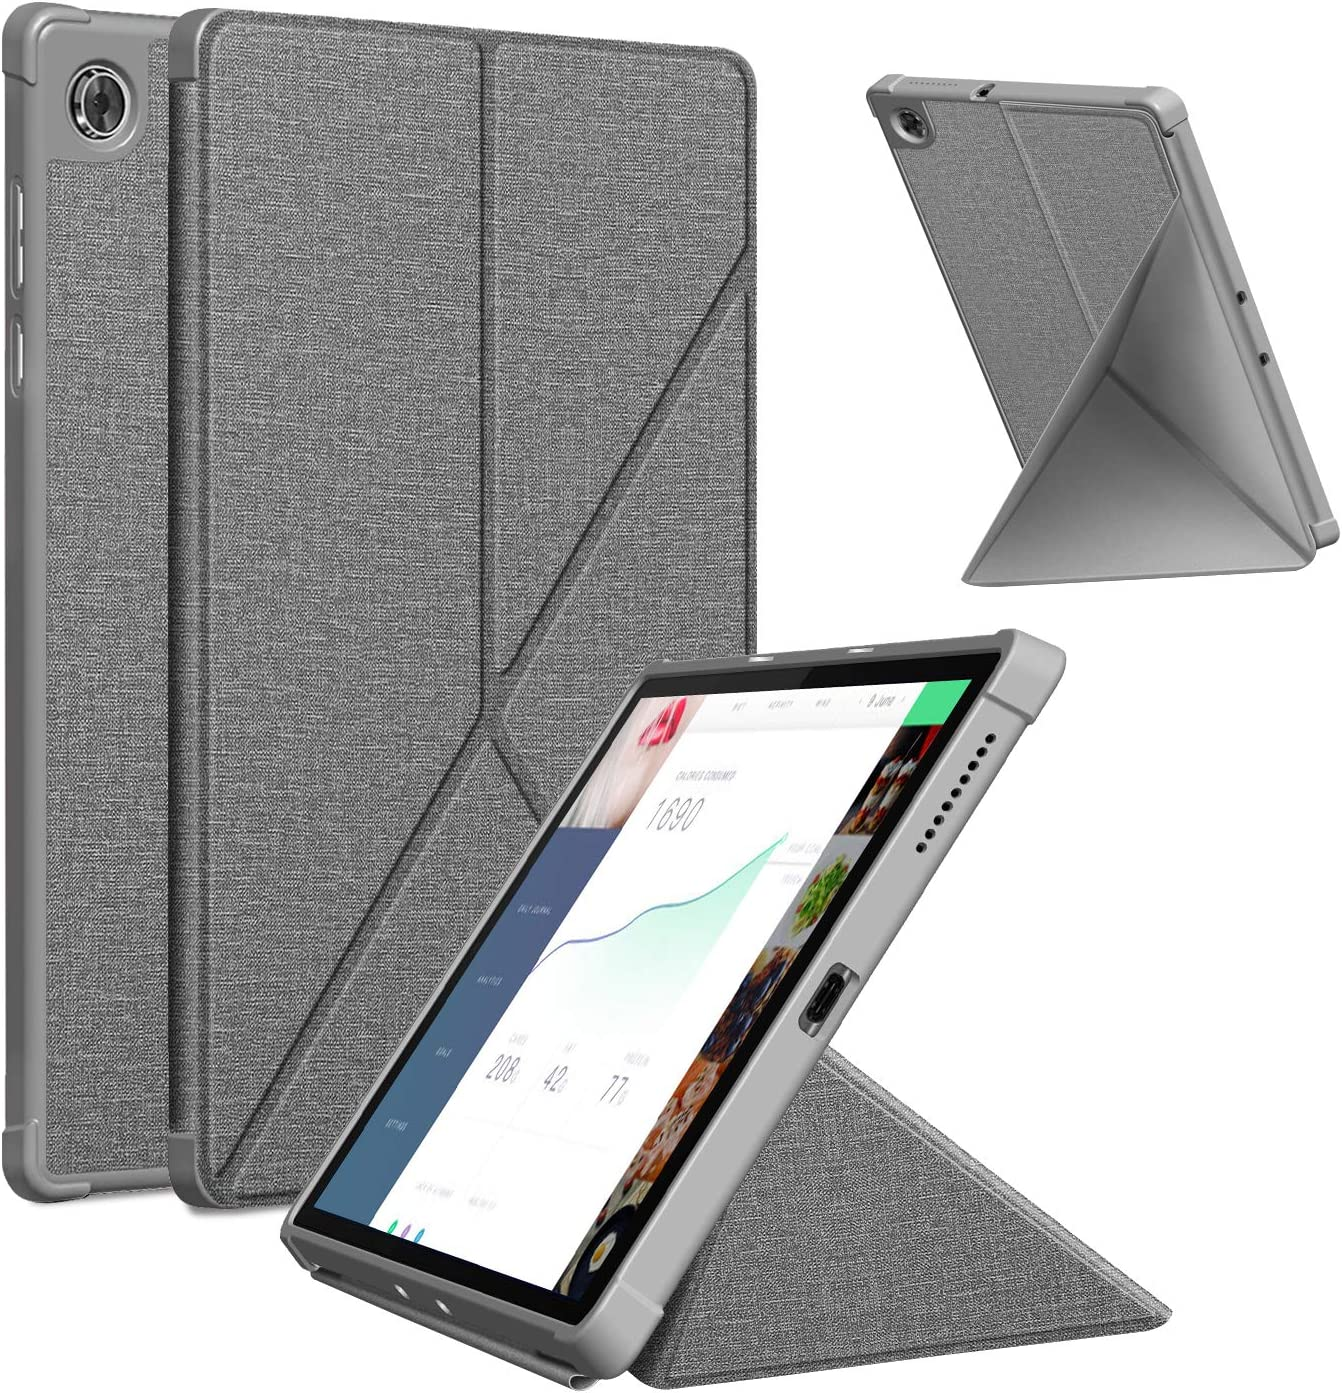 Case for Lenovo Tab M10 HD 2nd Gen 10.1 inch 2020 Standing Origami Slim Lightweight Shell Protective Cover, Soft TPU Back Cover for Lenovo Tab M10 HD TB-X306F/TB-X306X 10.1